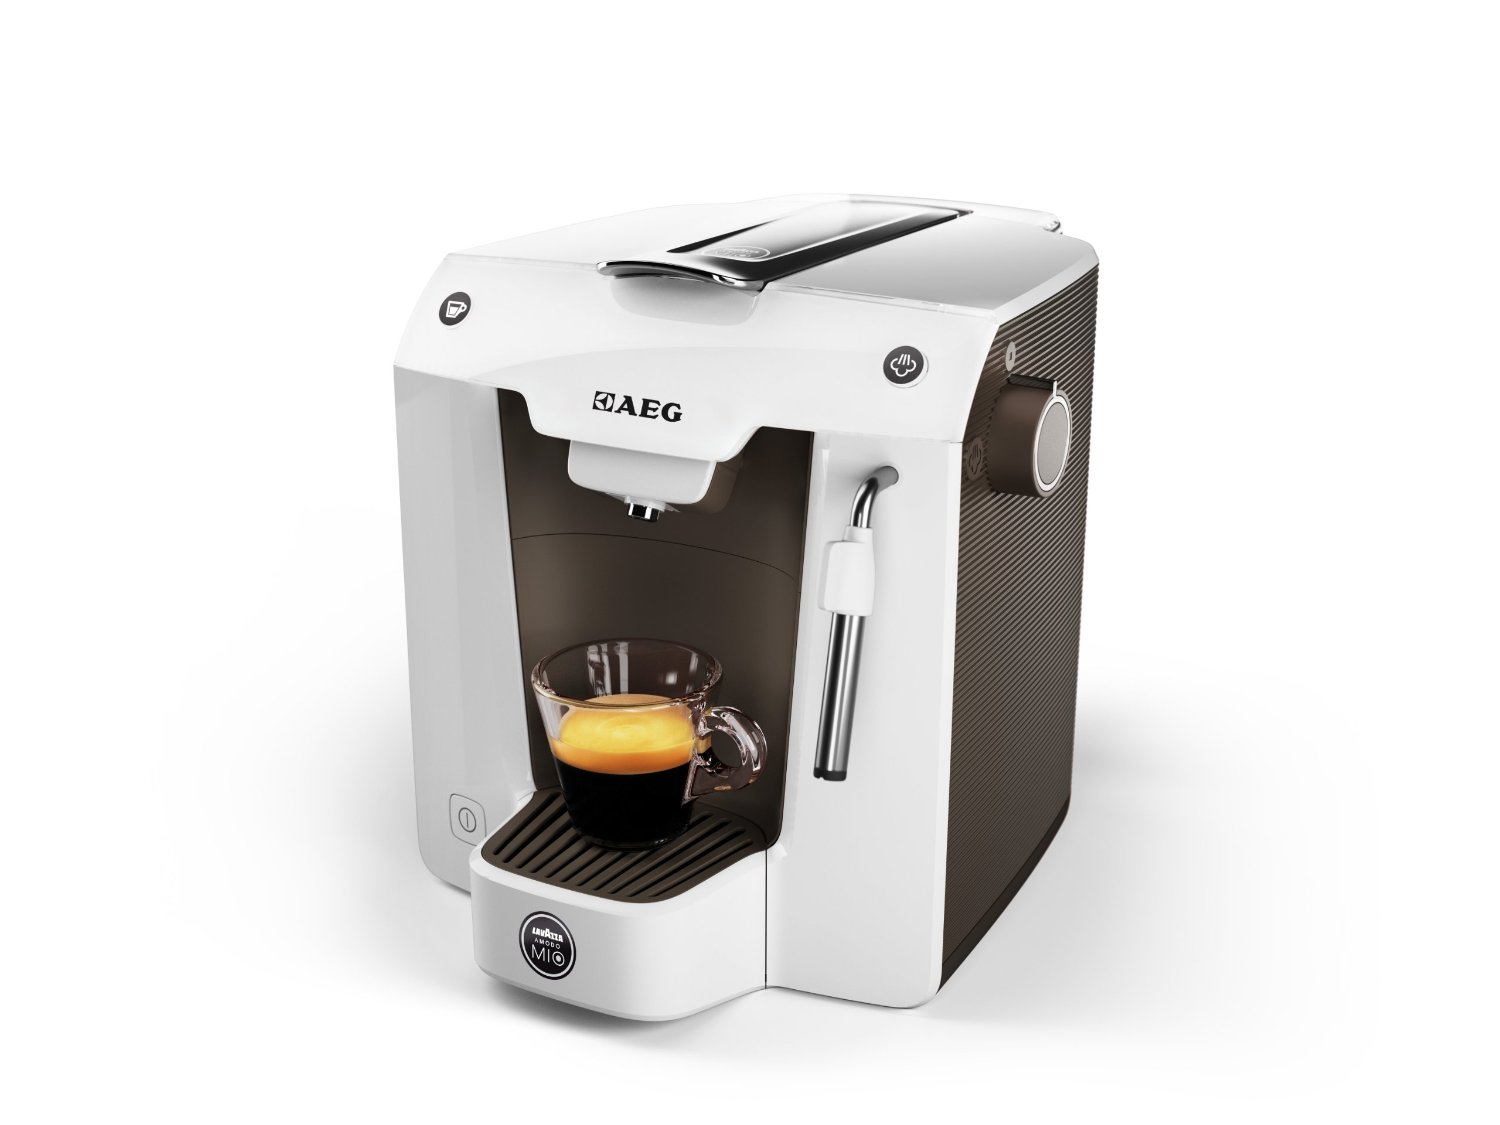 Aeg A Modo Mio Favola Lavazza Coffee Pod Machine Brownwhite